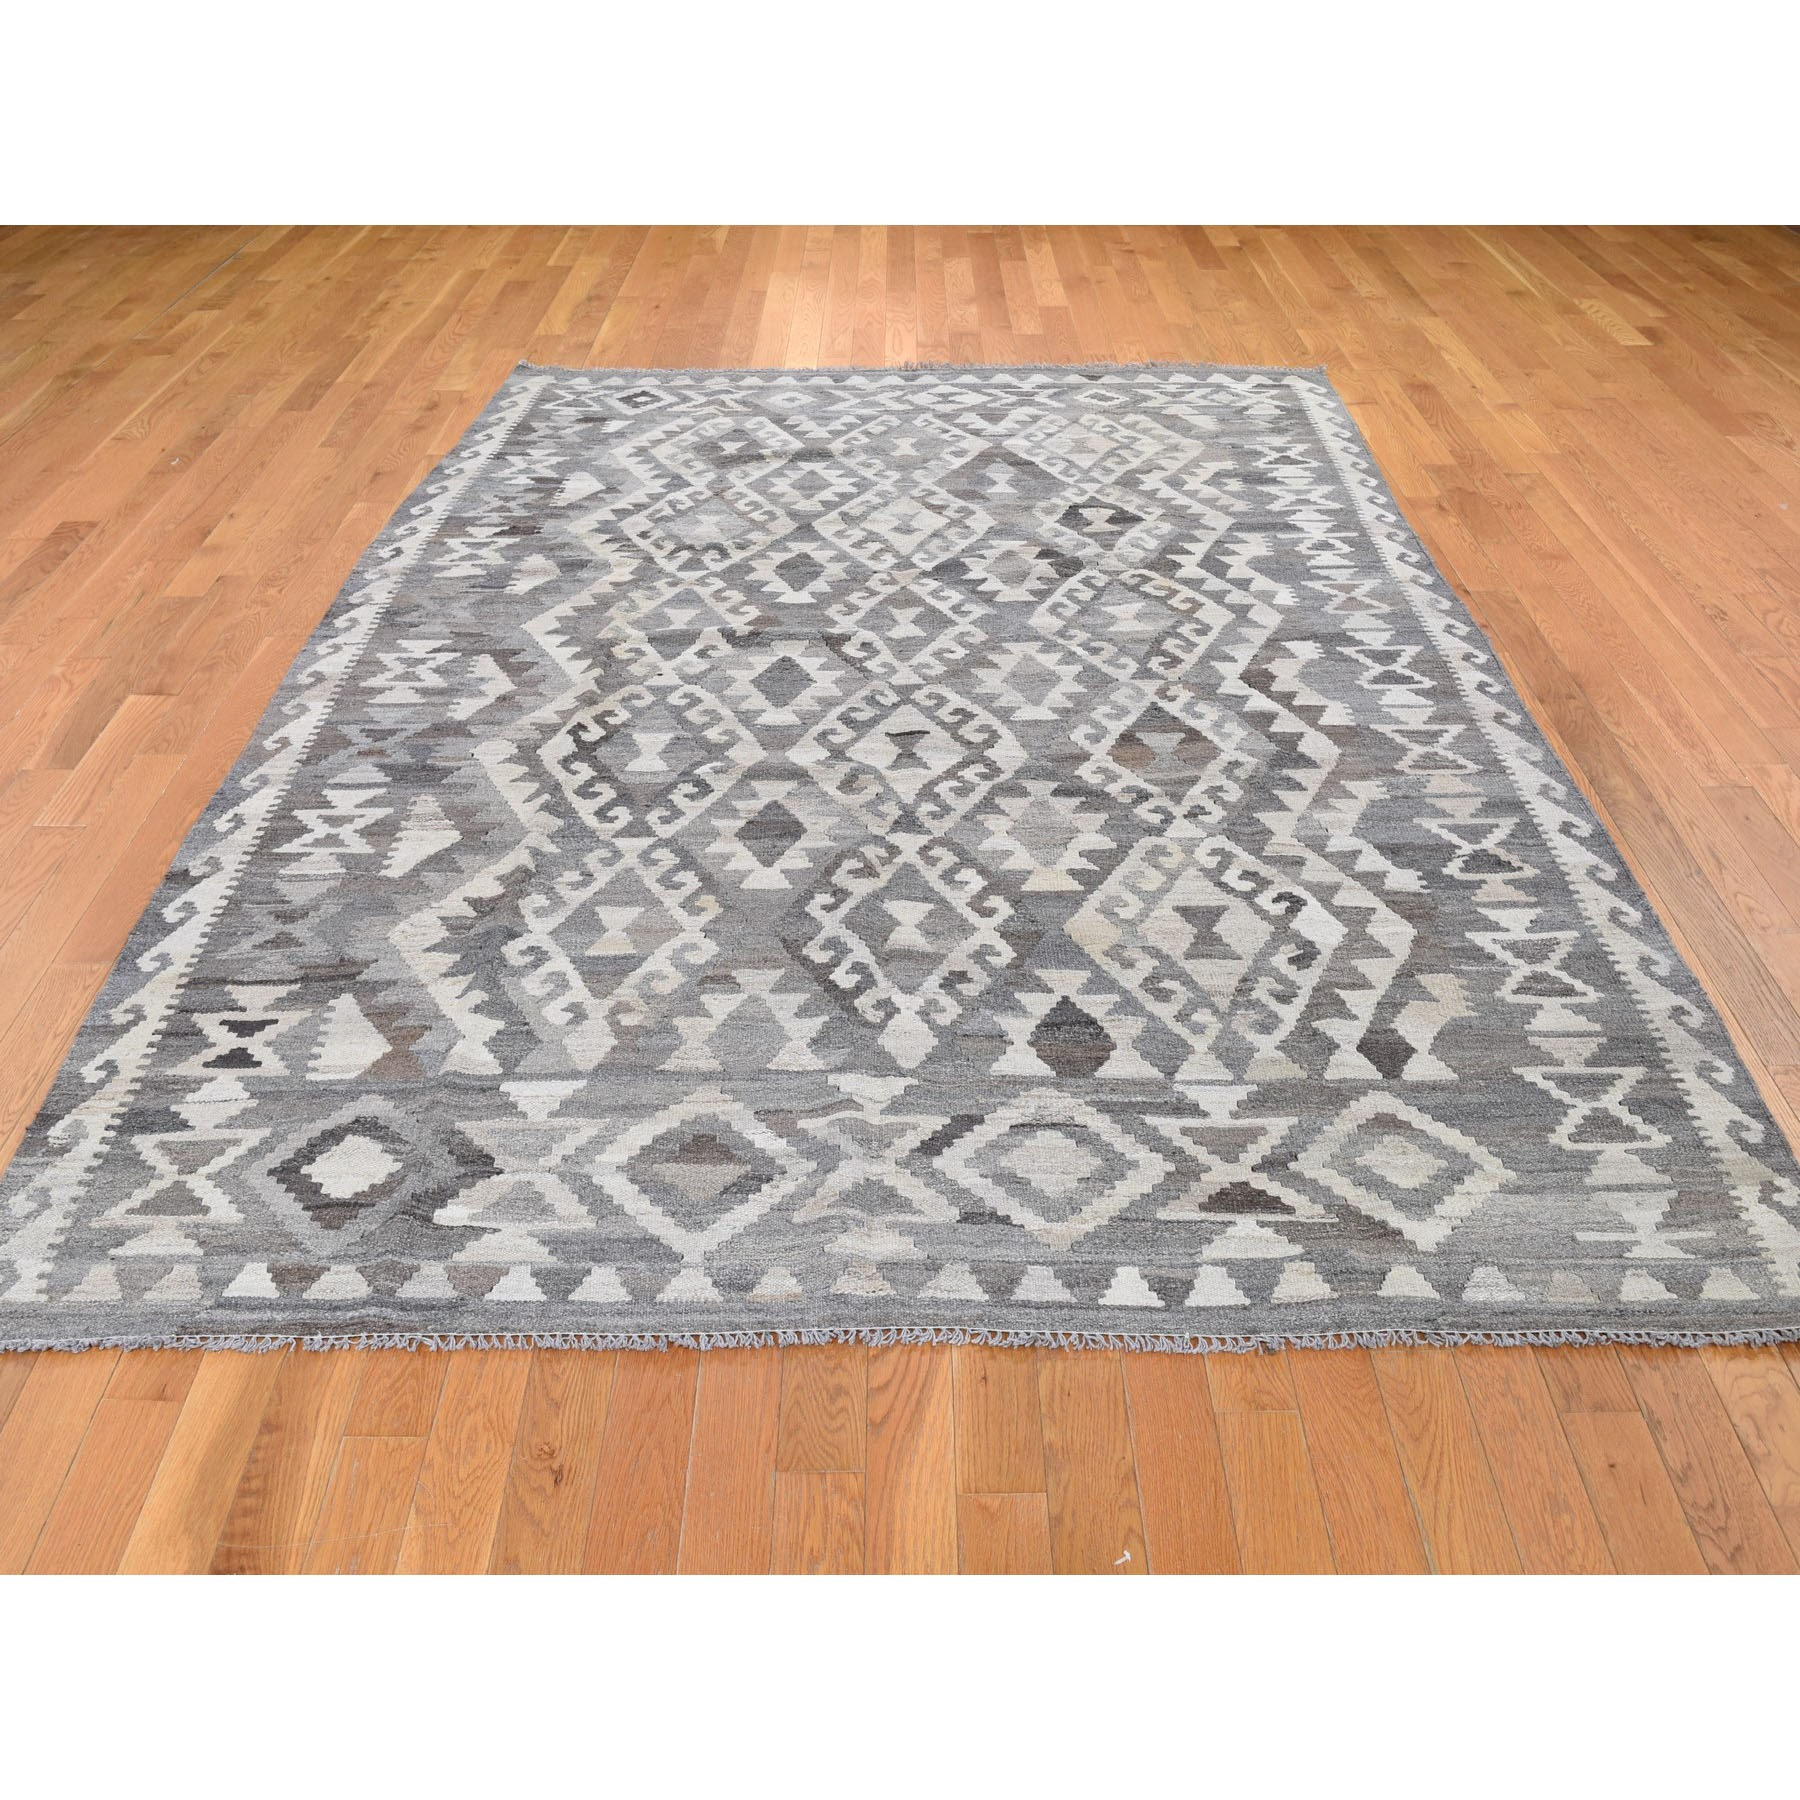 6-9 x9-9  Undyed Natural Wool Afghan Kilim Reversible Hand Woven Oriental Rug